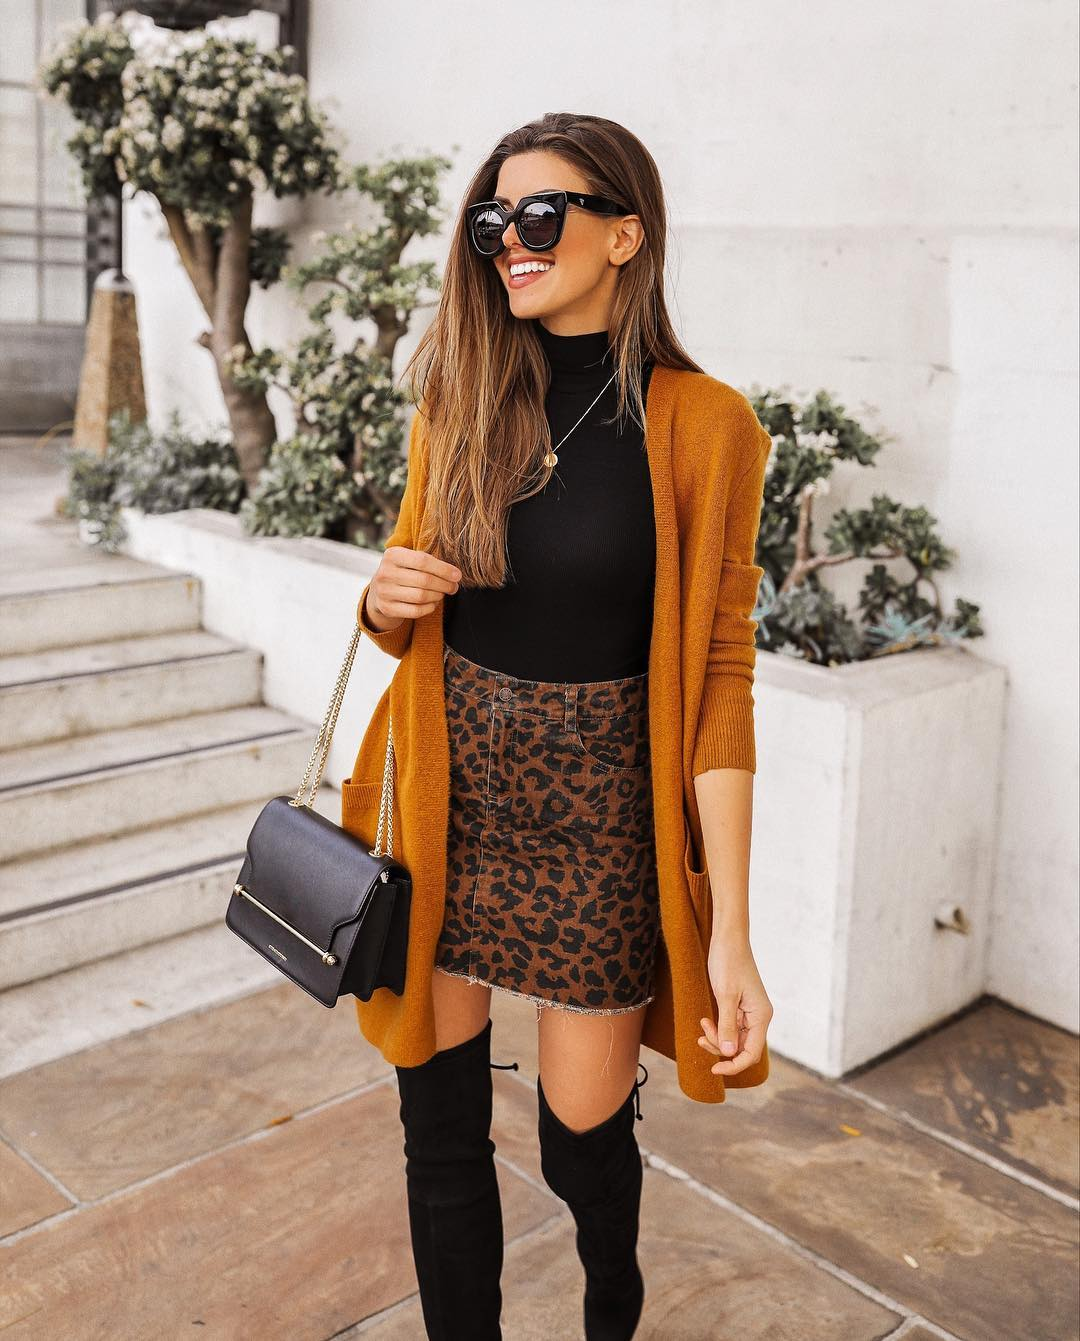 How To Wear Leopard Print Skirt And Mustard Cardigan This Fall 2020